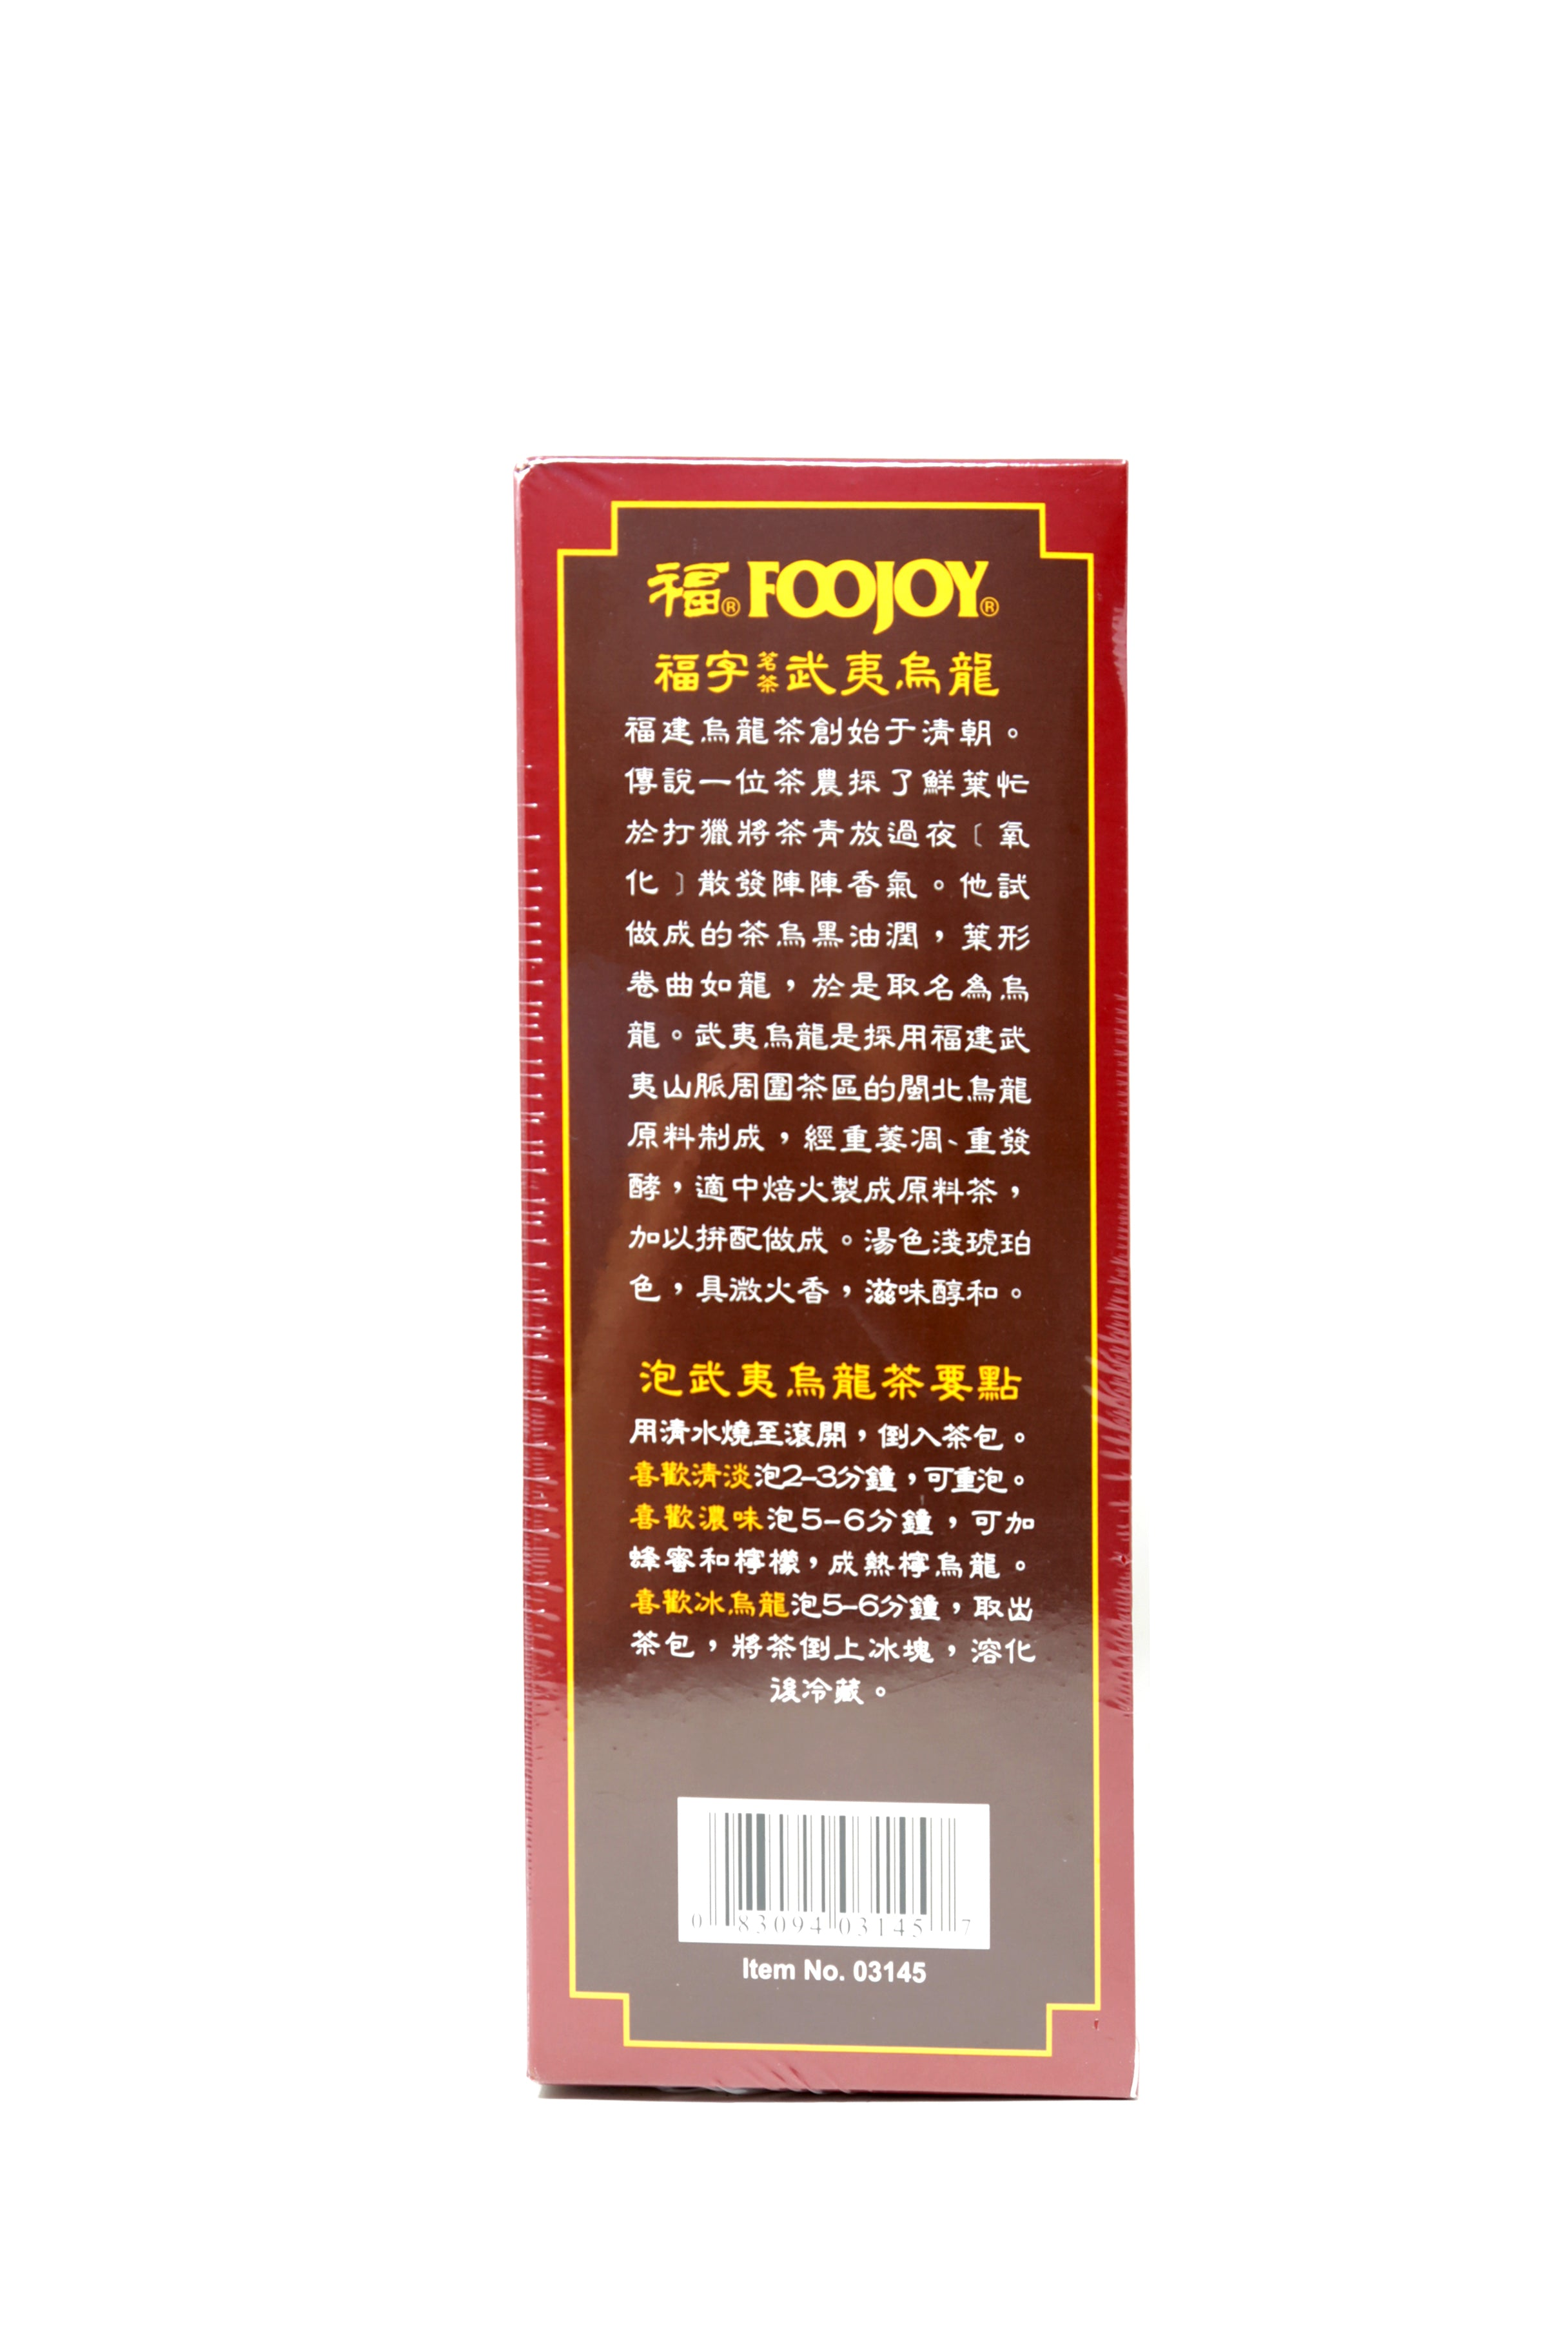 Foojoy Oolong Tea Chamber Tea Bags 7 Oz (200 g)